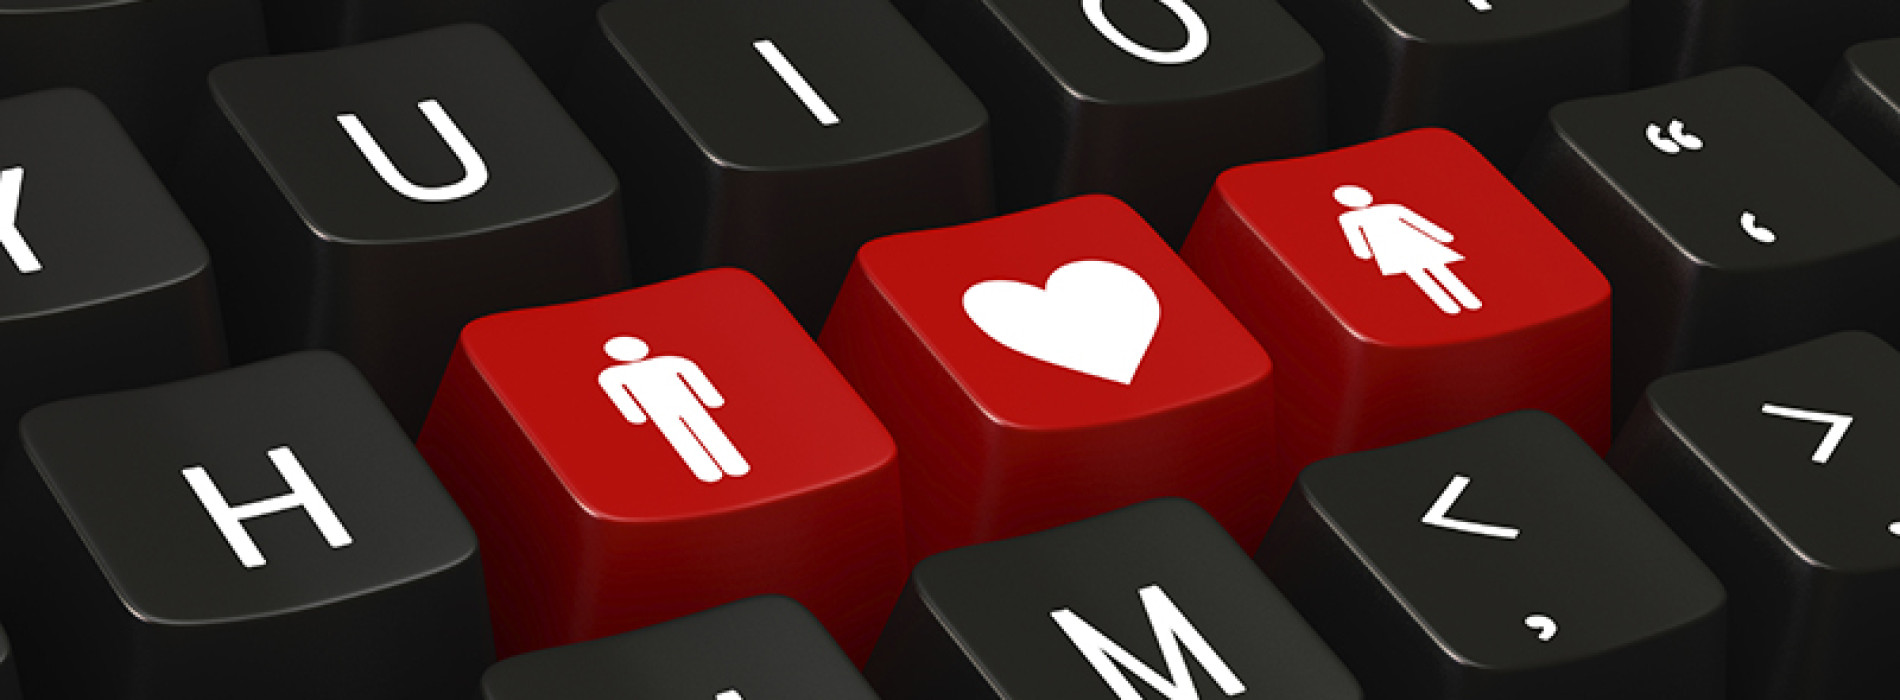 How dangerous can online dating be?